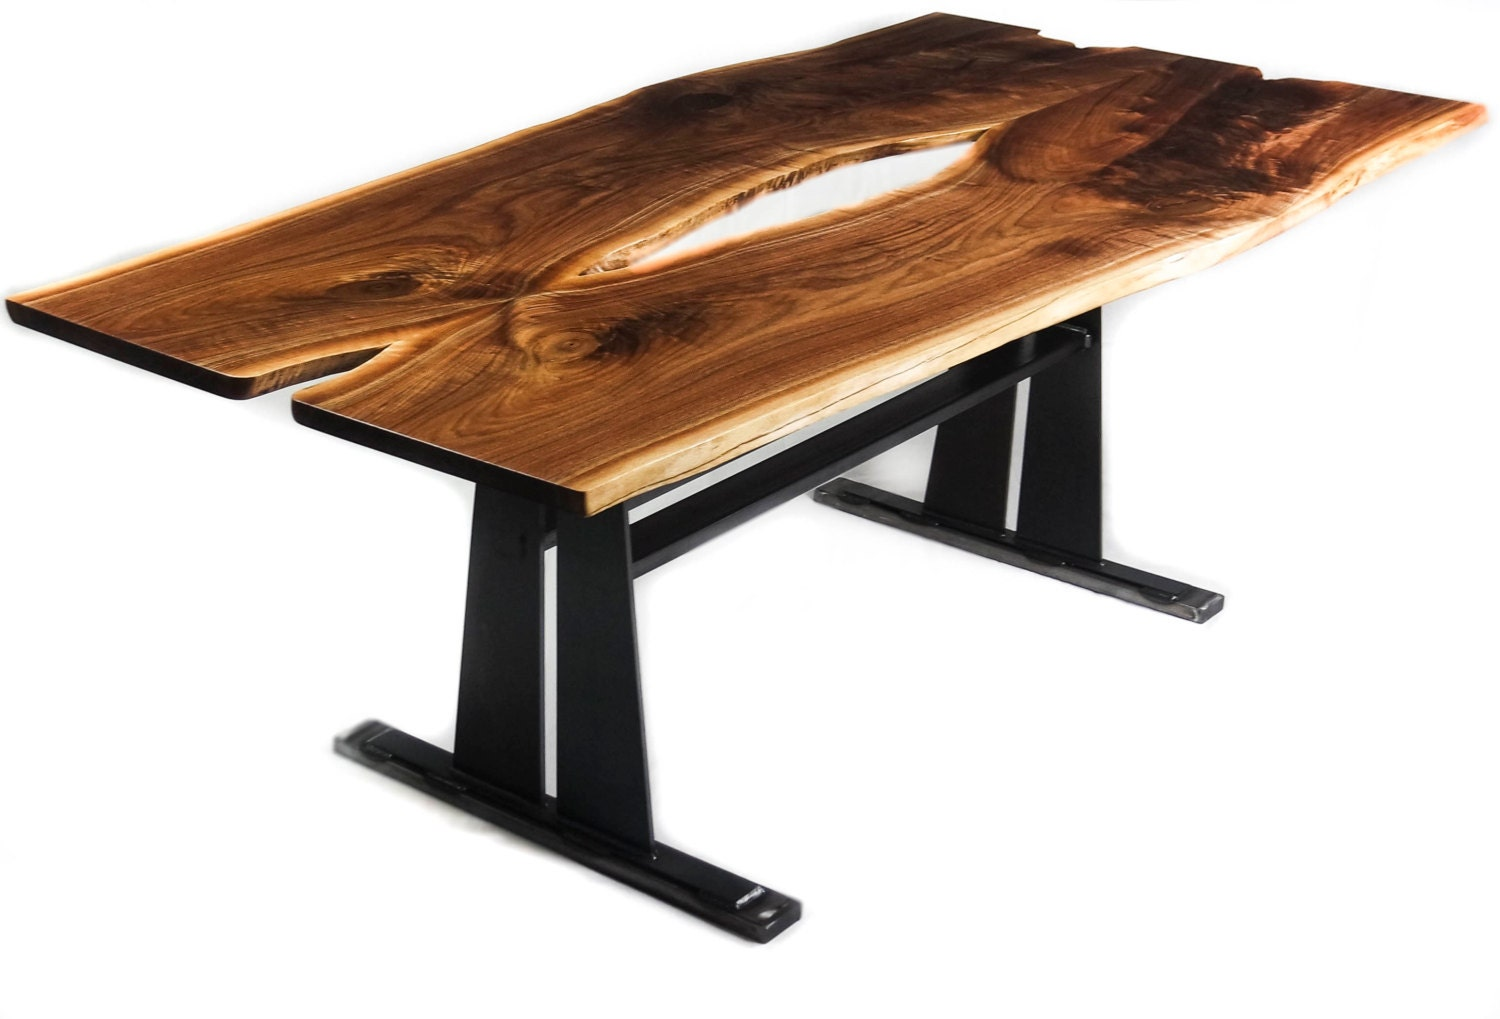 bookmatched walnut live edge wood slab dining table with. Black Bedroom Furniture Sets. Home Design Ideas